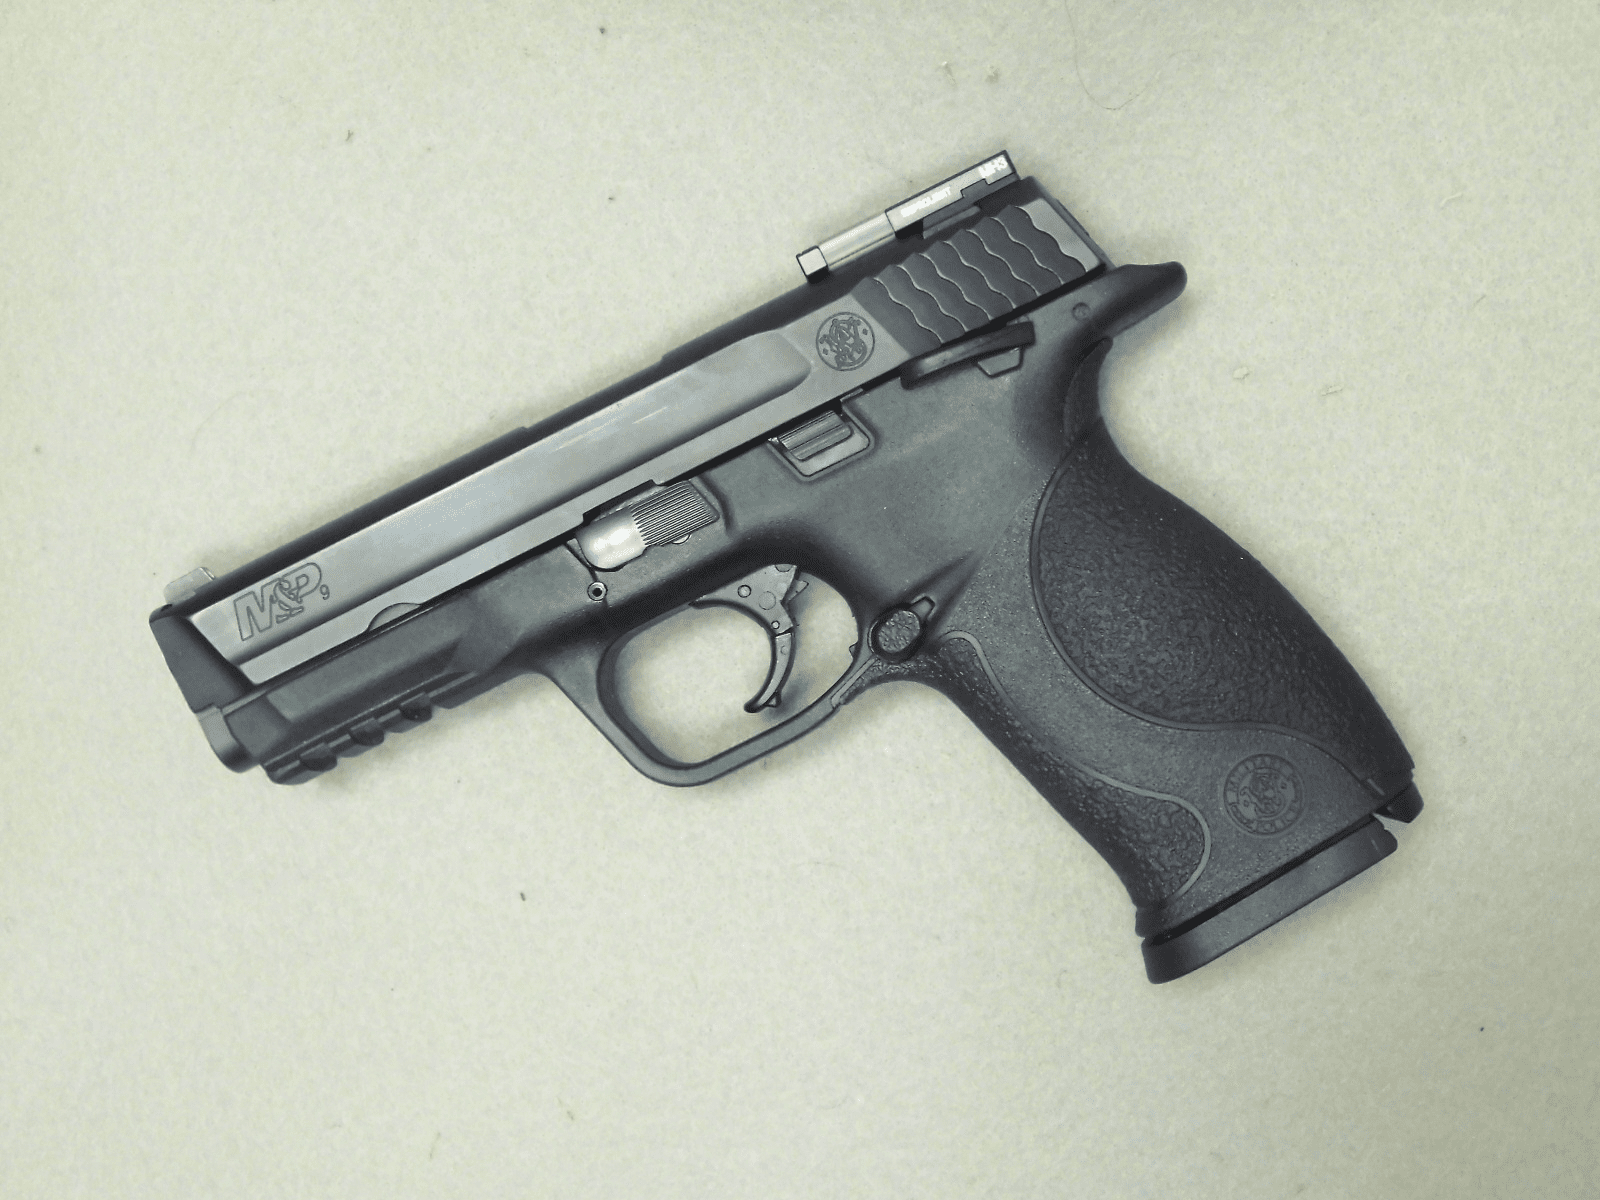 Smith & Wesson M&P9 (9mm)